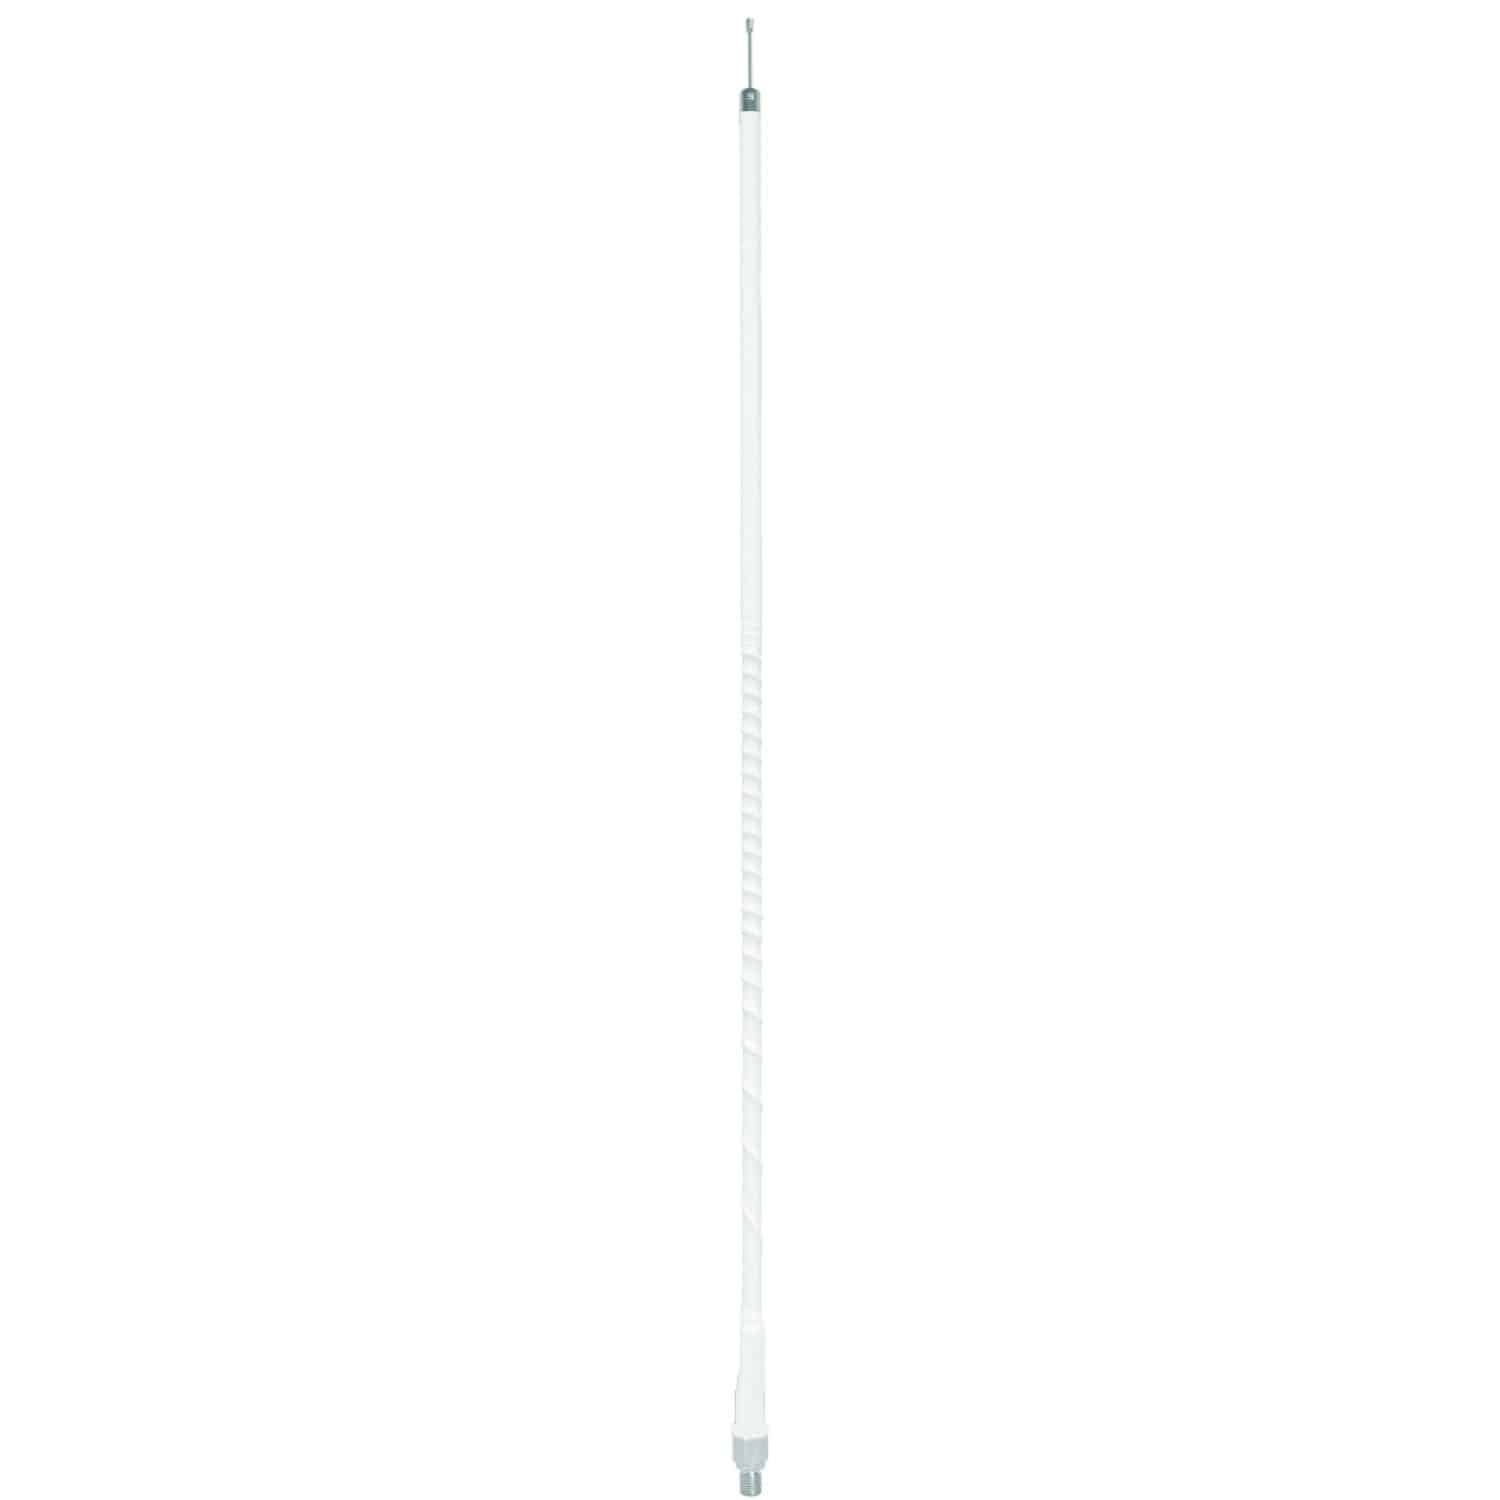 AUFLEX2-W - 2' White Superflex CB Antenna